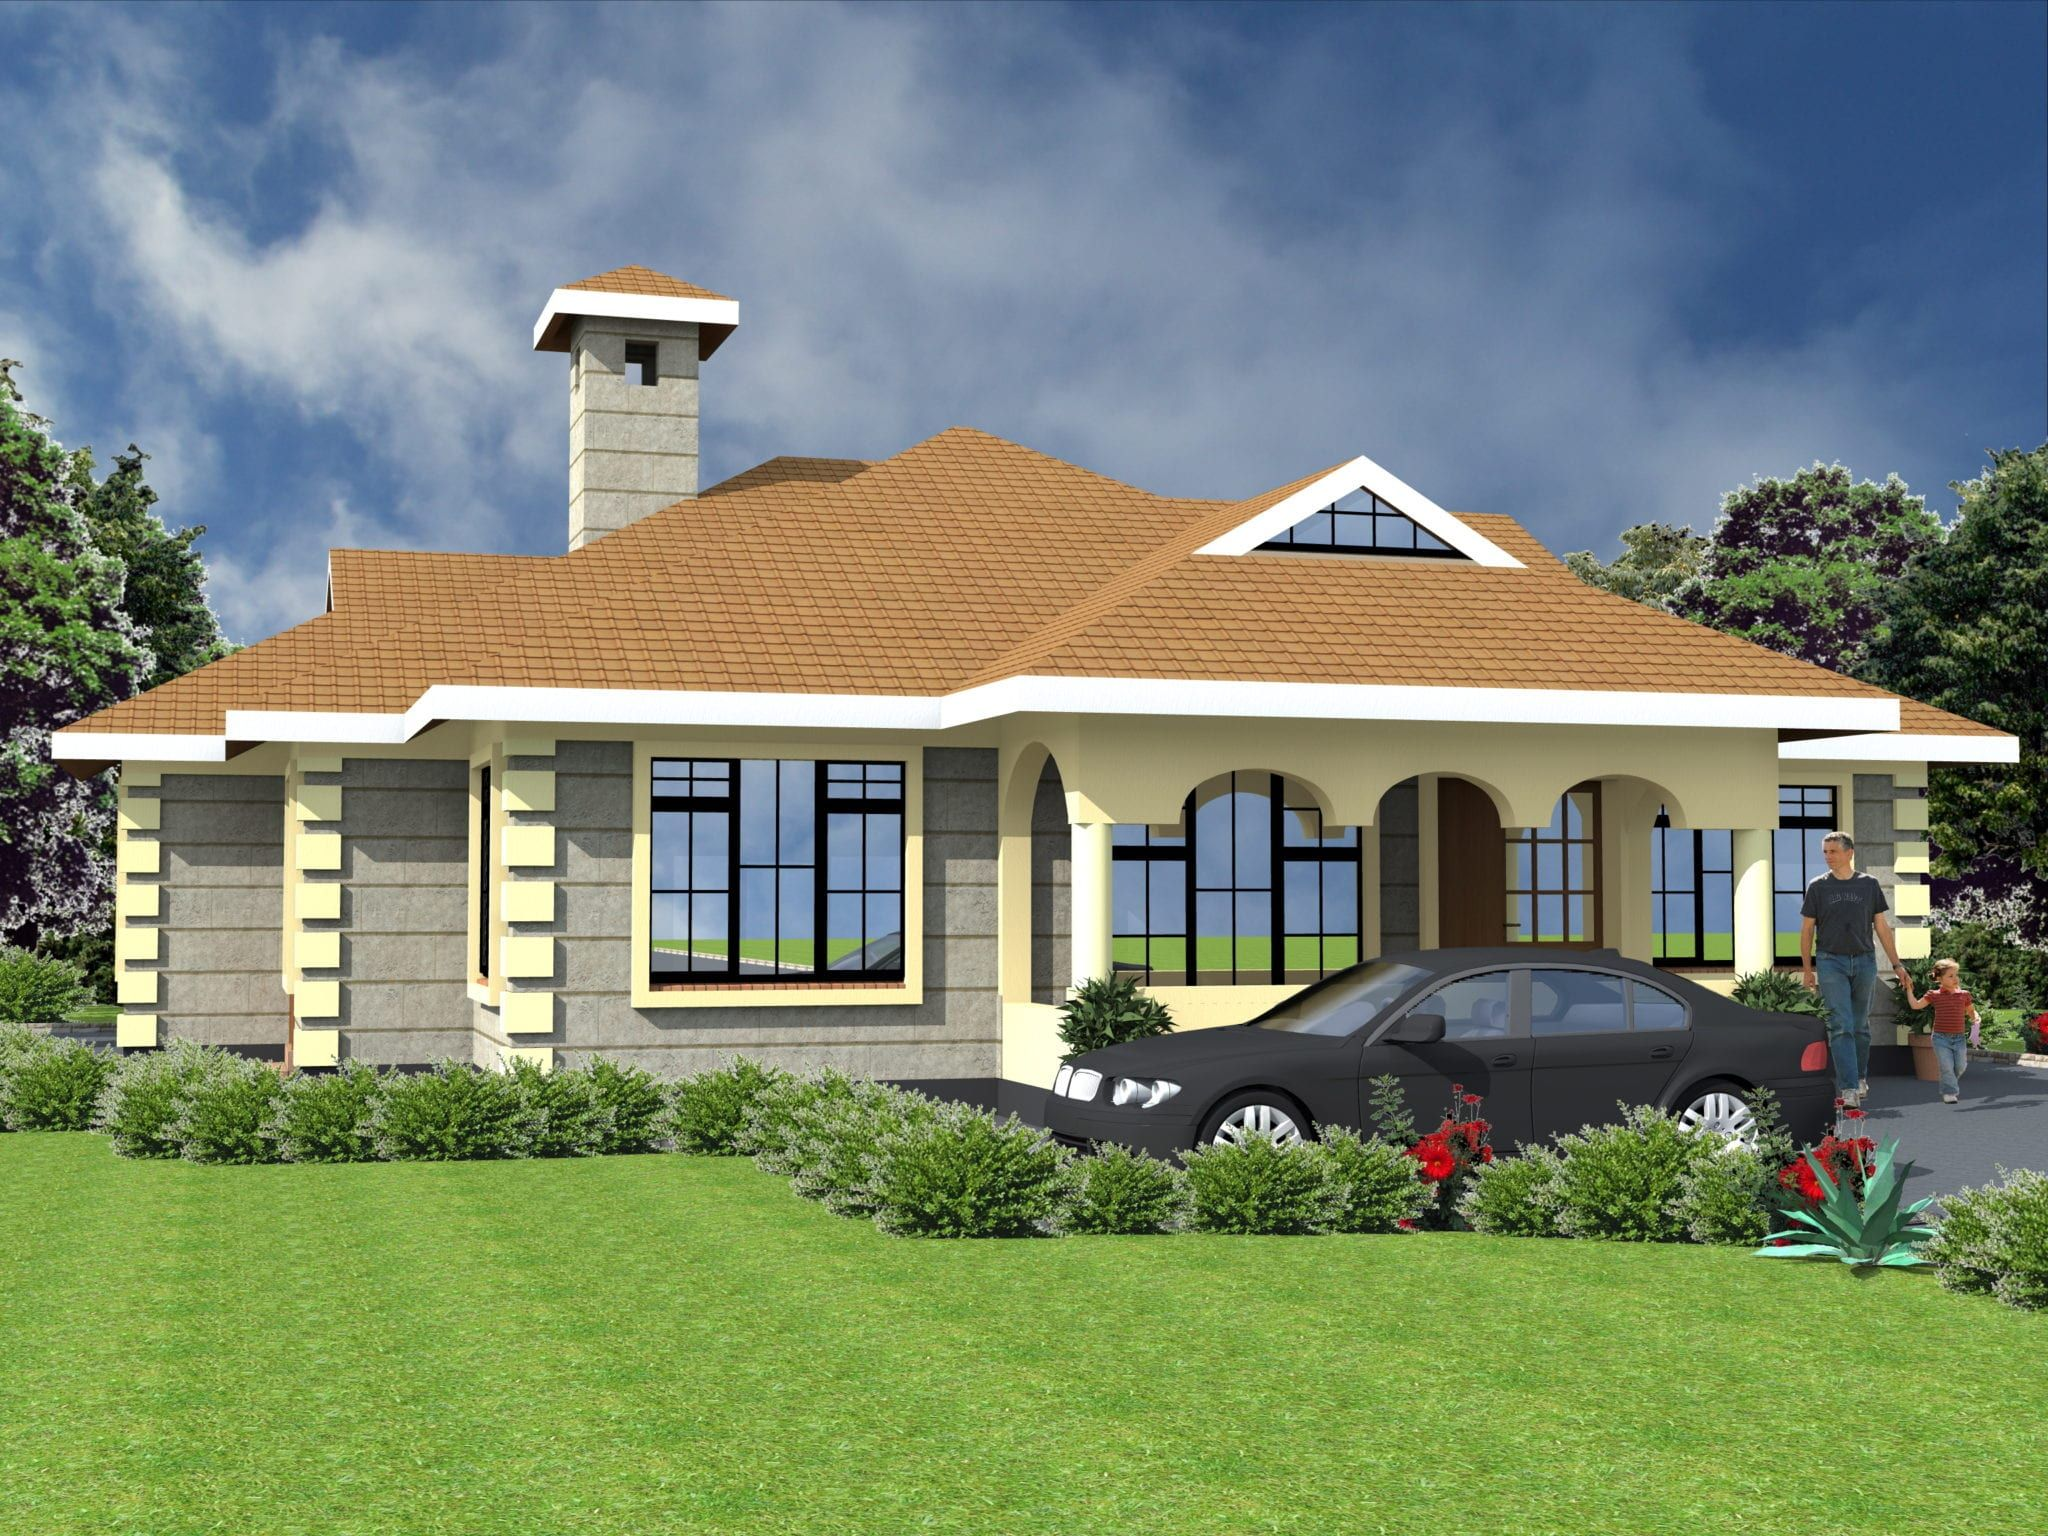 House Design Kenya Affordable House Design Beautiful House Plans House Designs In Kenya